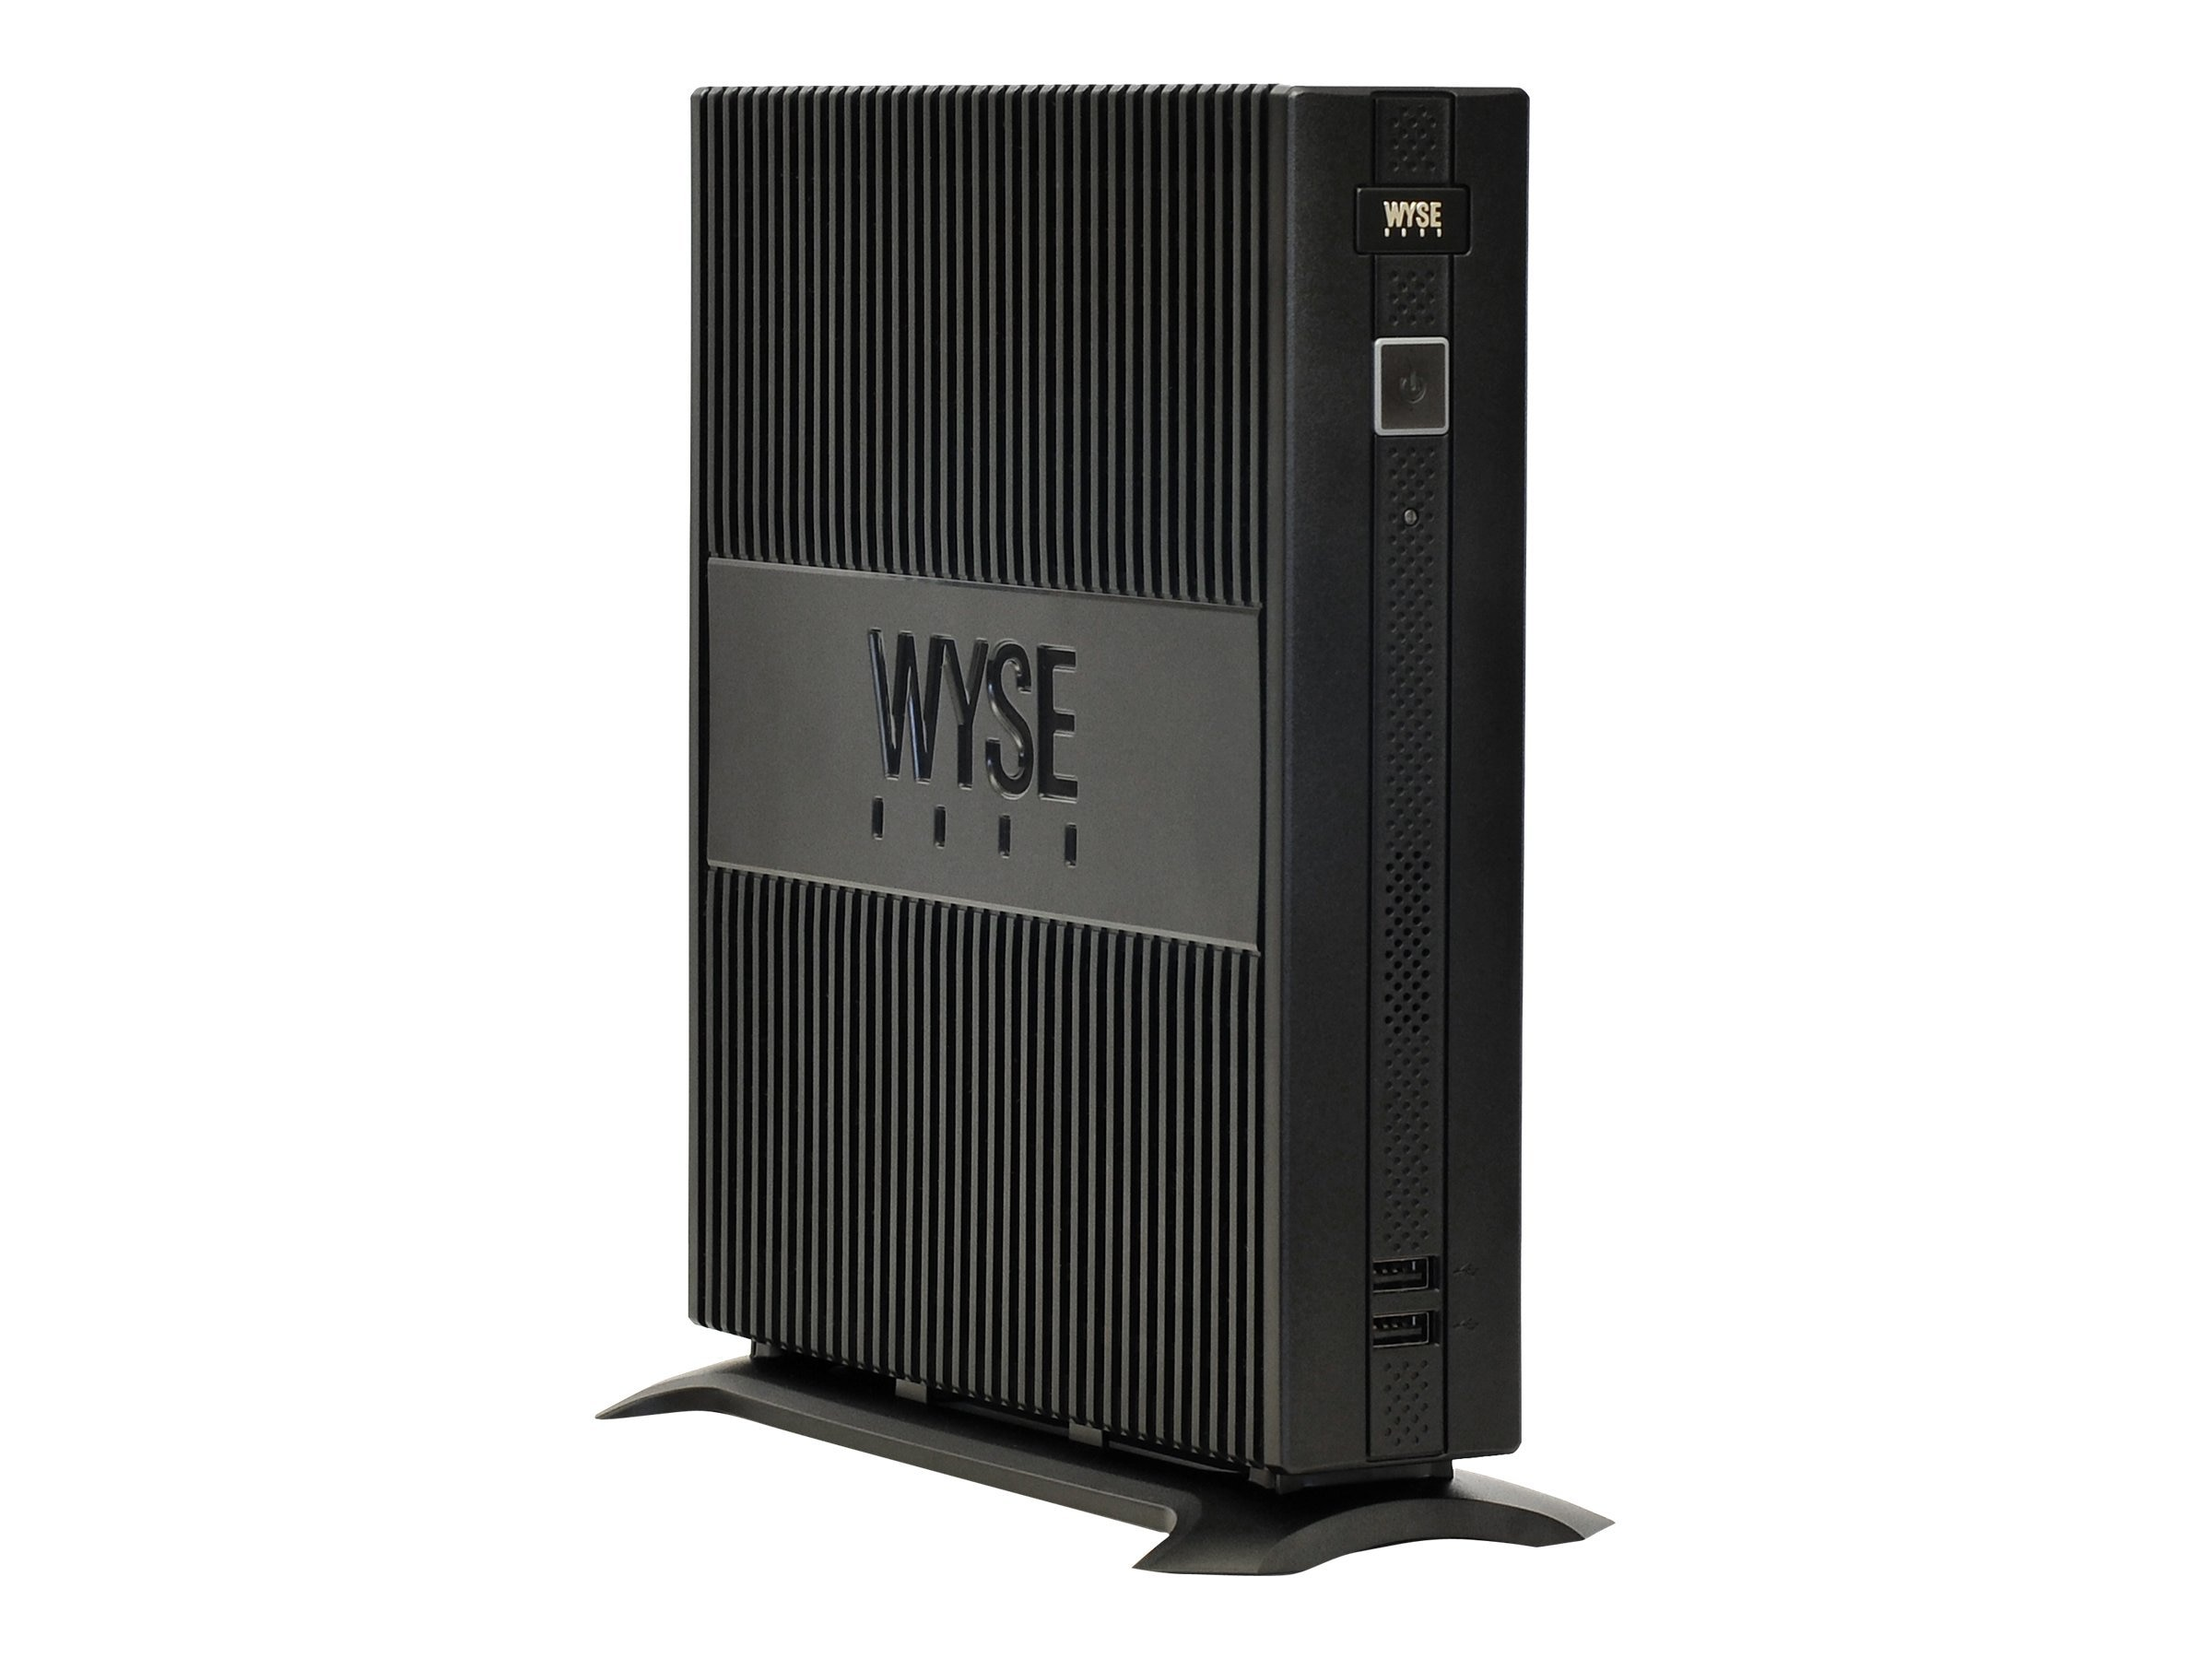 Wyse R90LW Thin Client 2GB RAM 4GB Flash, 902212-02L, 16553890, Thin Client Hardware